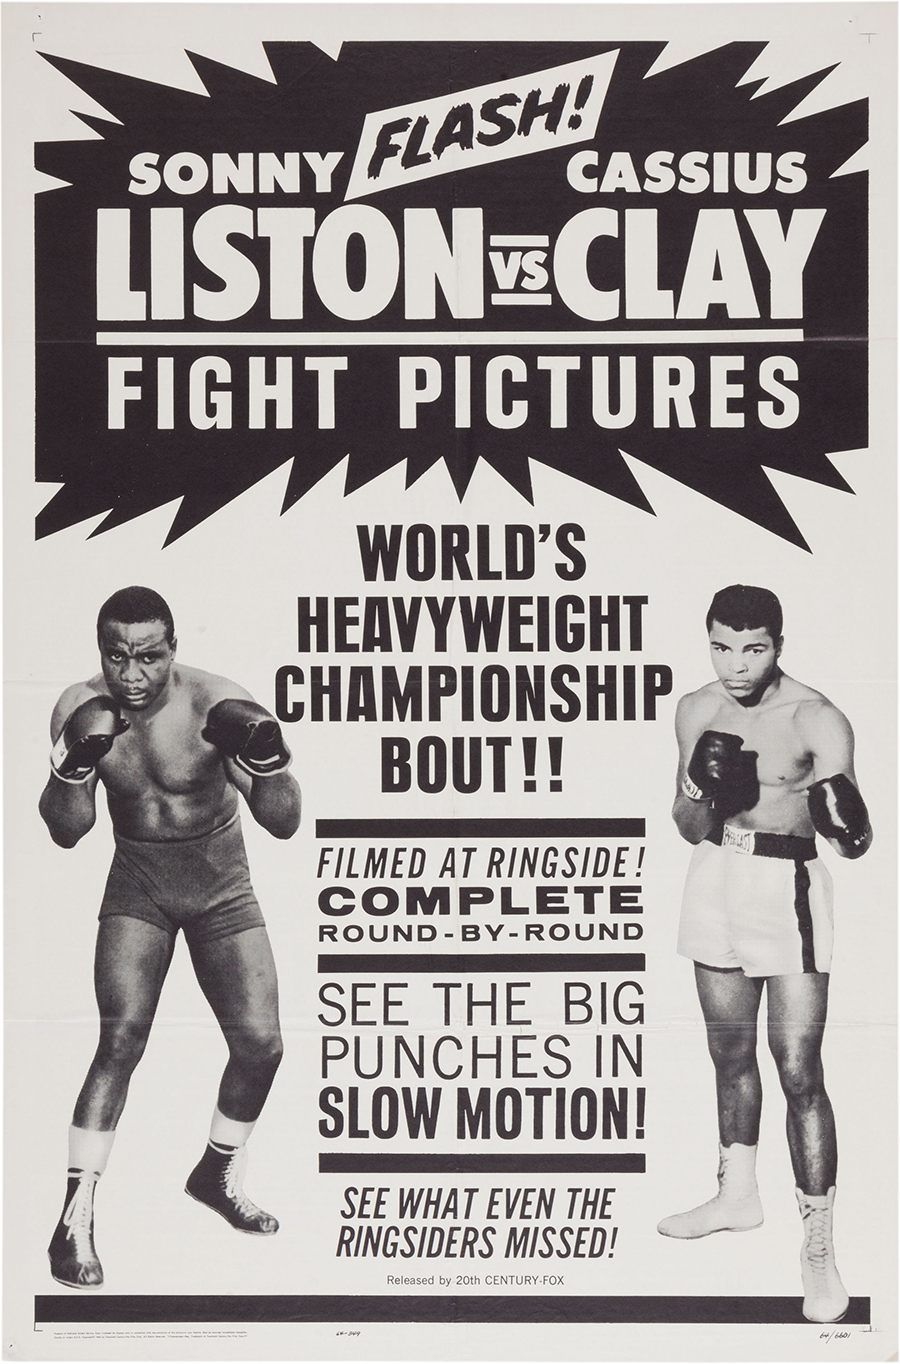 1964 Clay vs. Liston Fight Film Poster :: Heritage Auctions